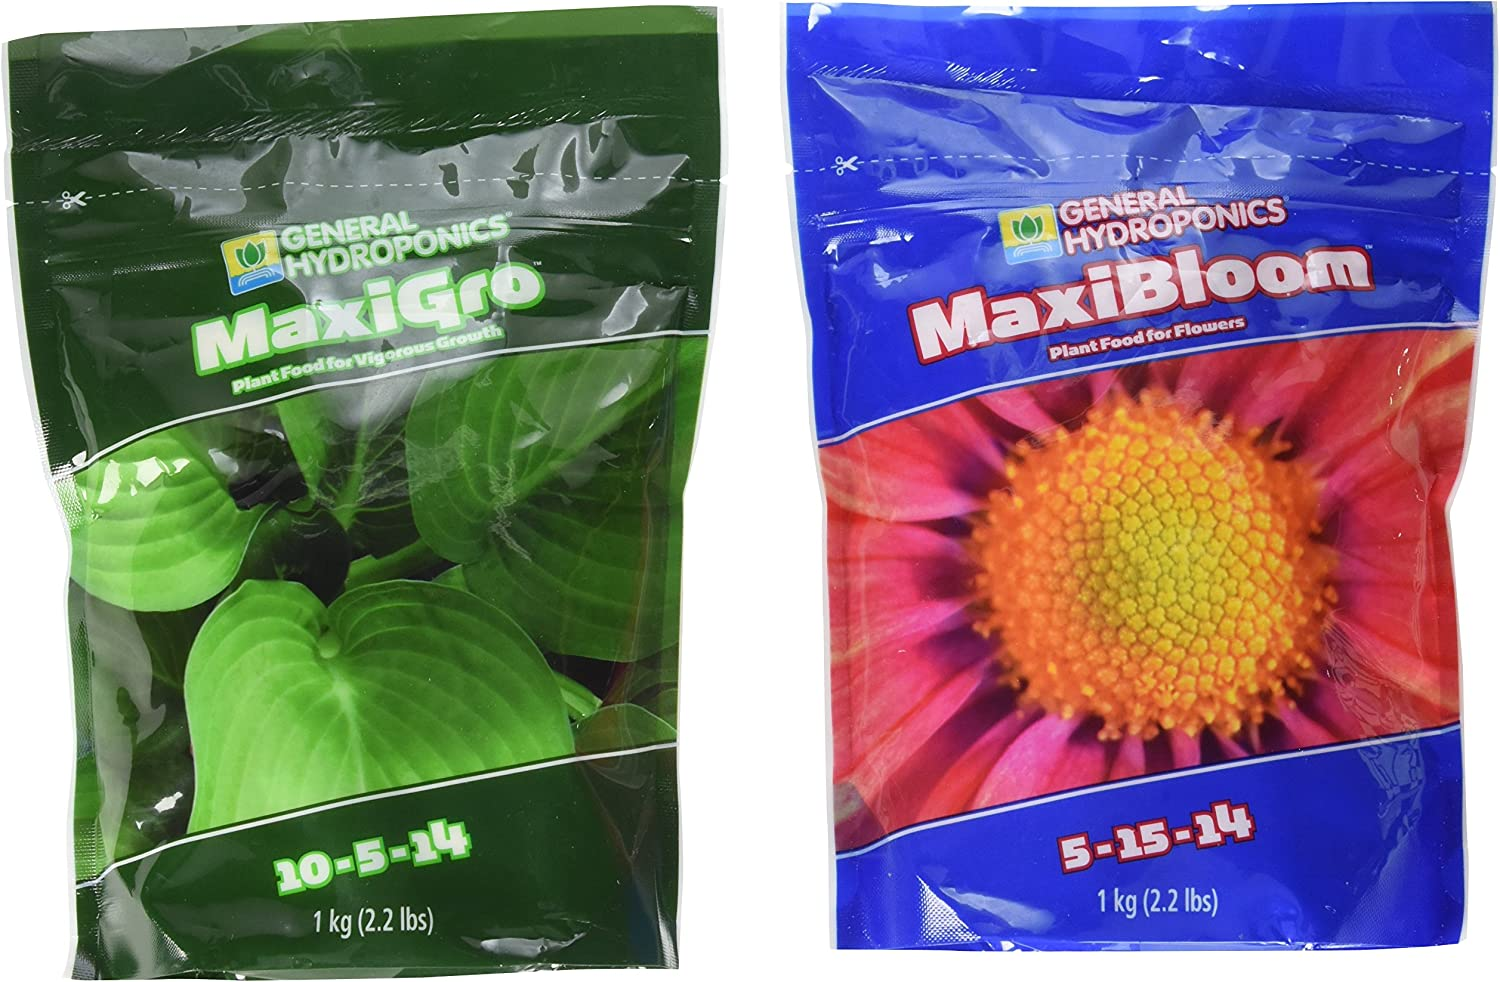 General Hydroponics 718281+718301 Maxigro and Maxibloom Fertilizer, Each 2.2 lbs